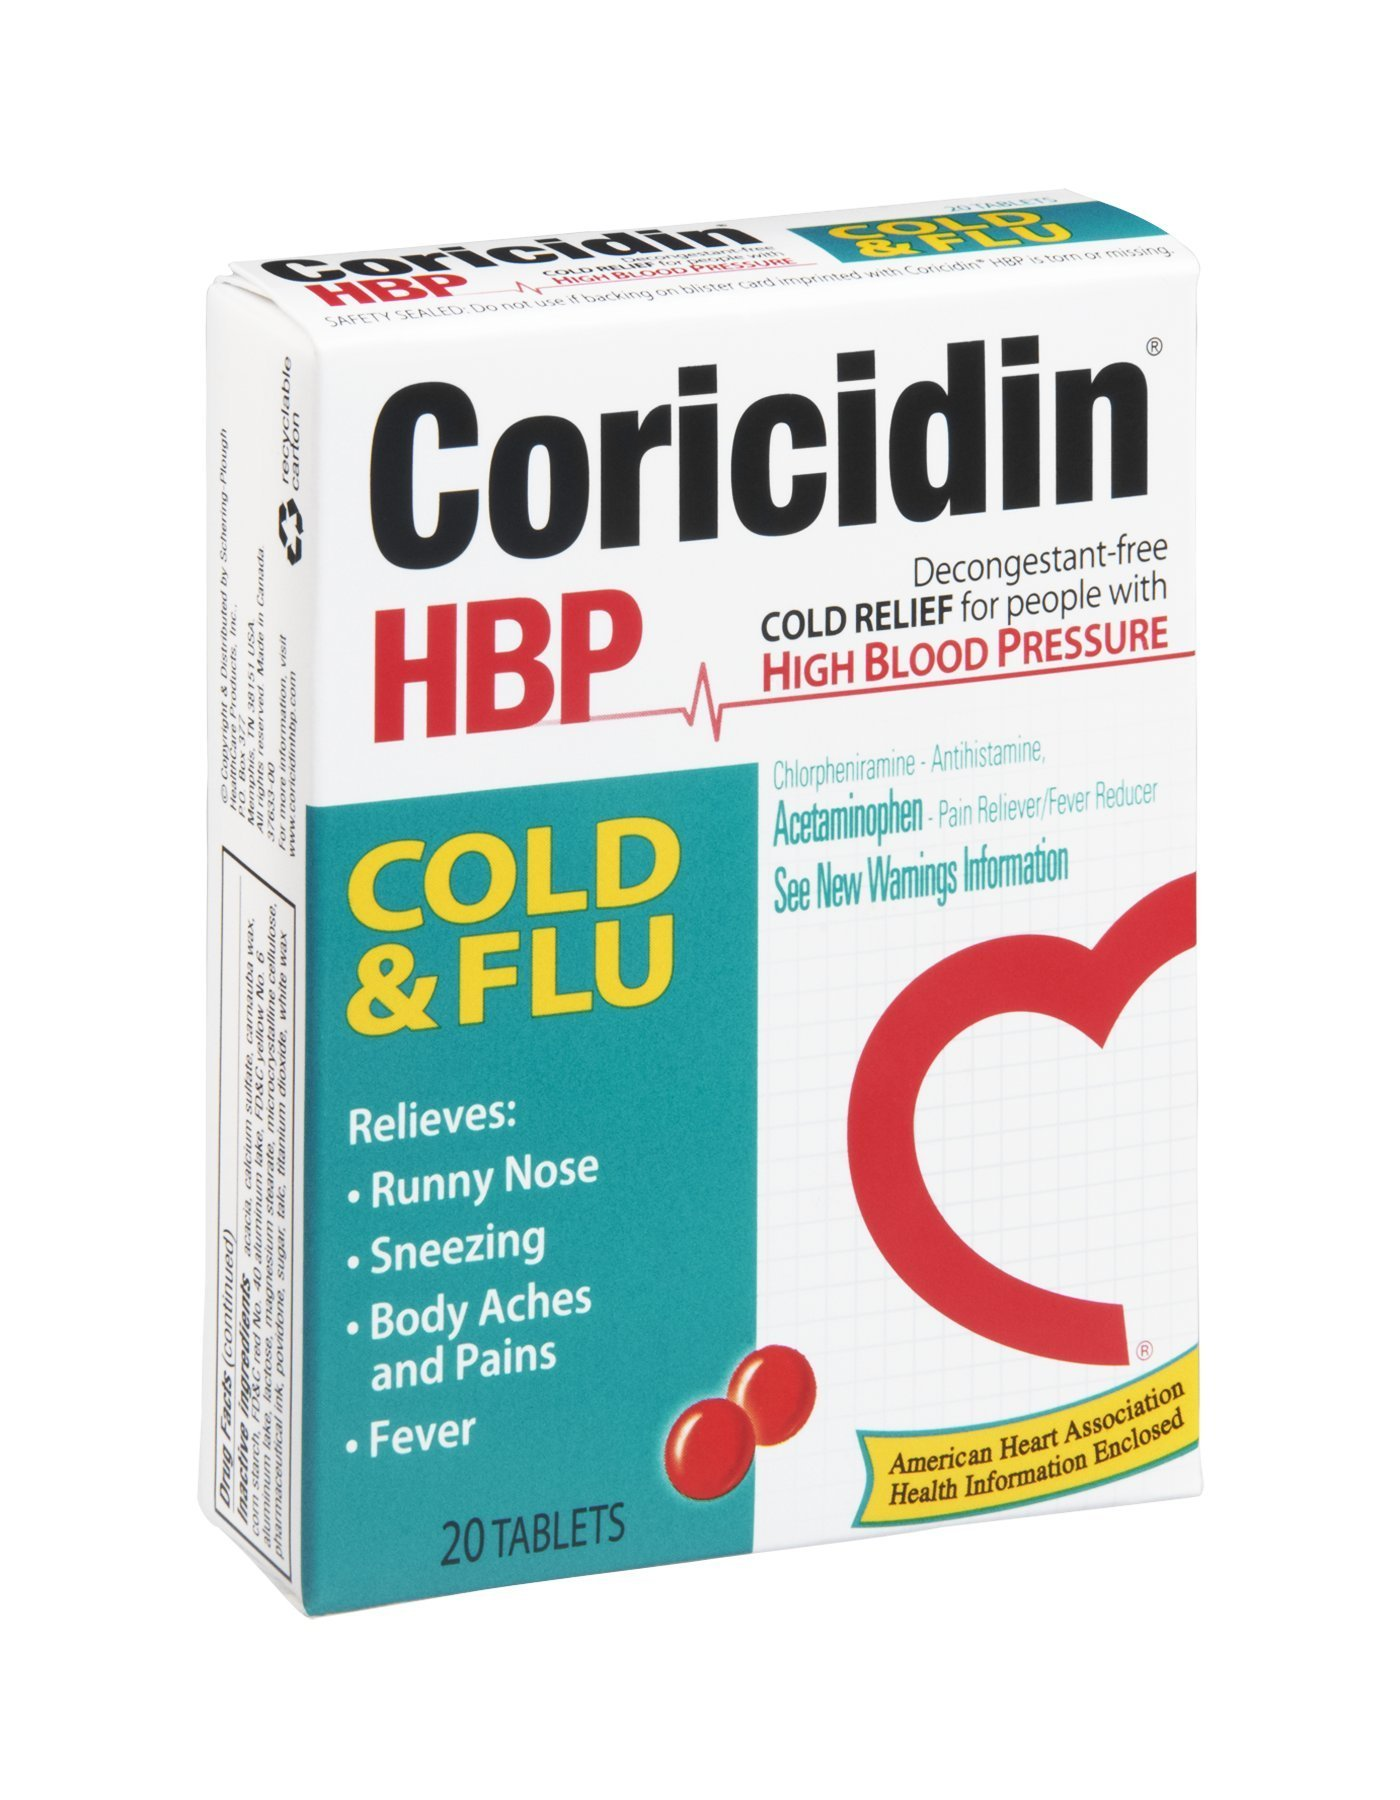 Coricidin HBP Cold & Flu Relief Tablets 20CT (Pack of 12)